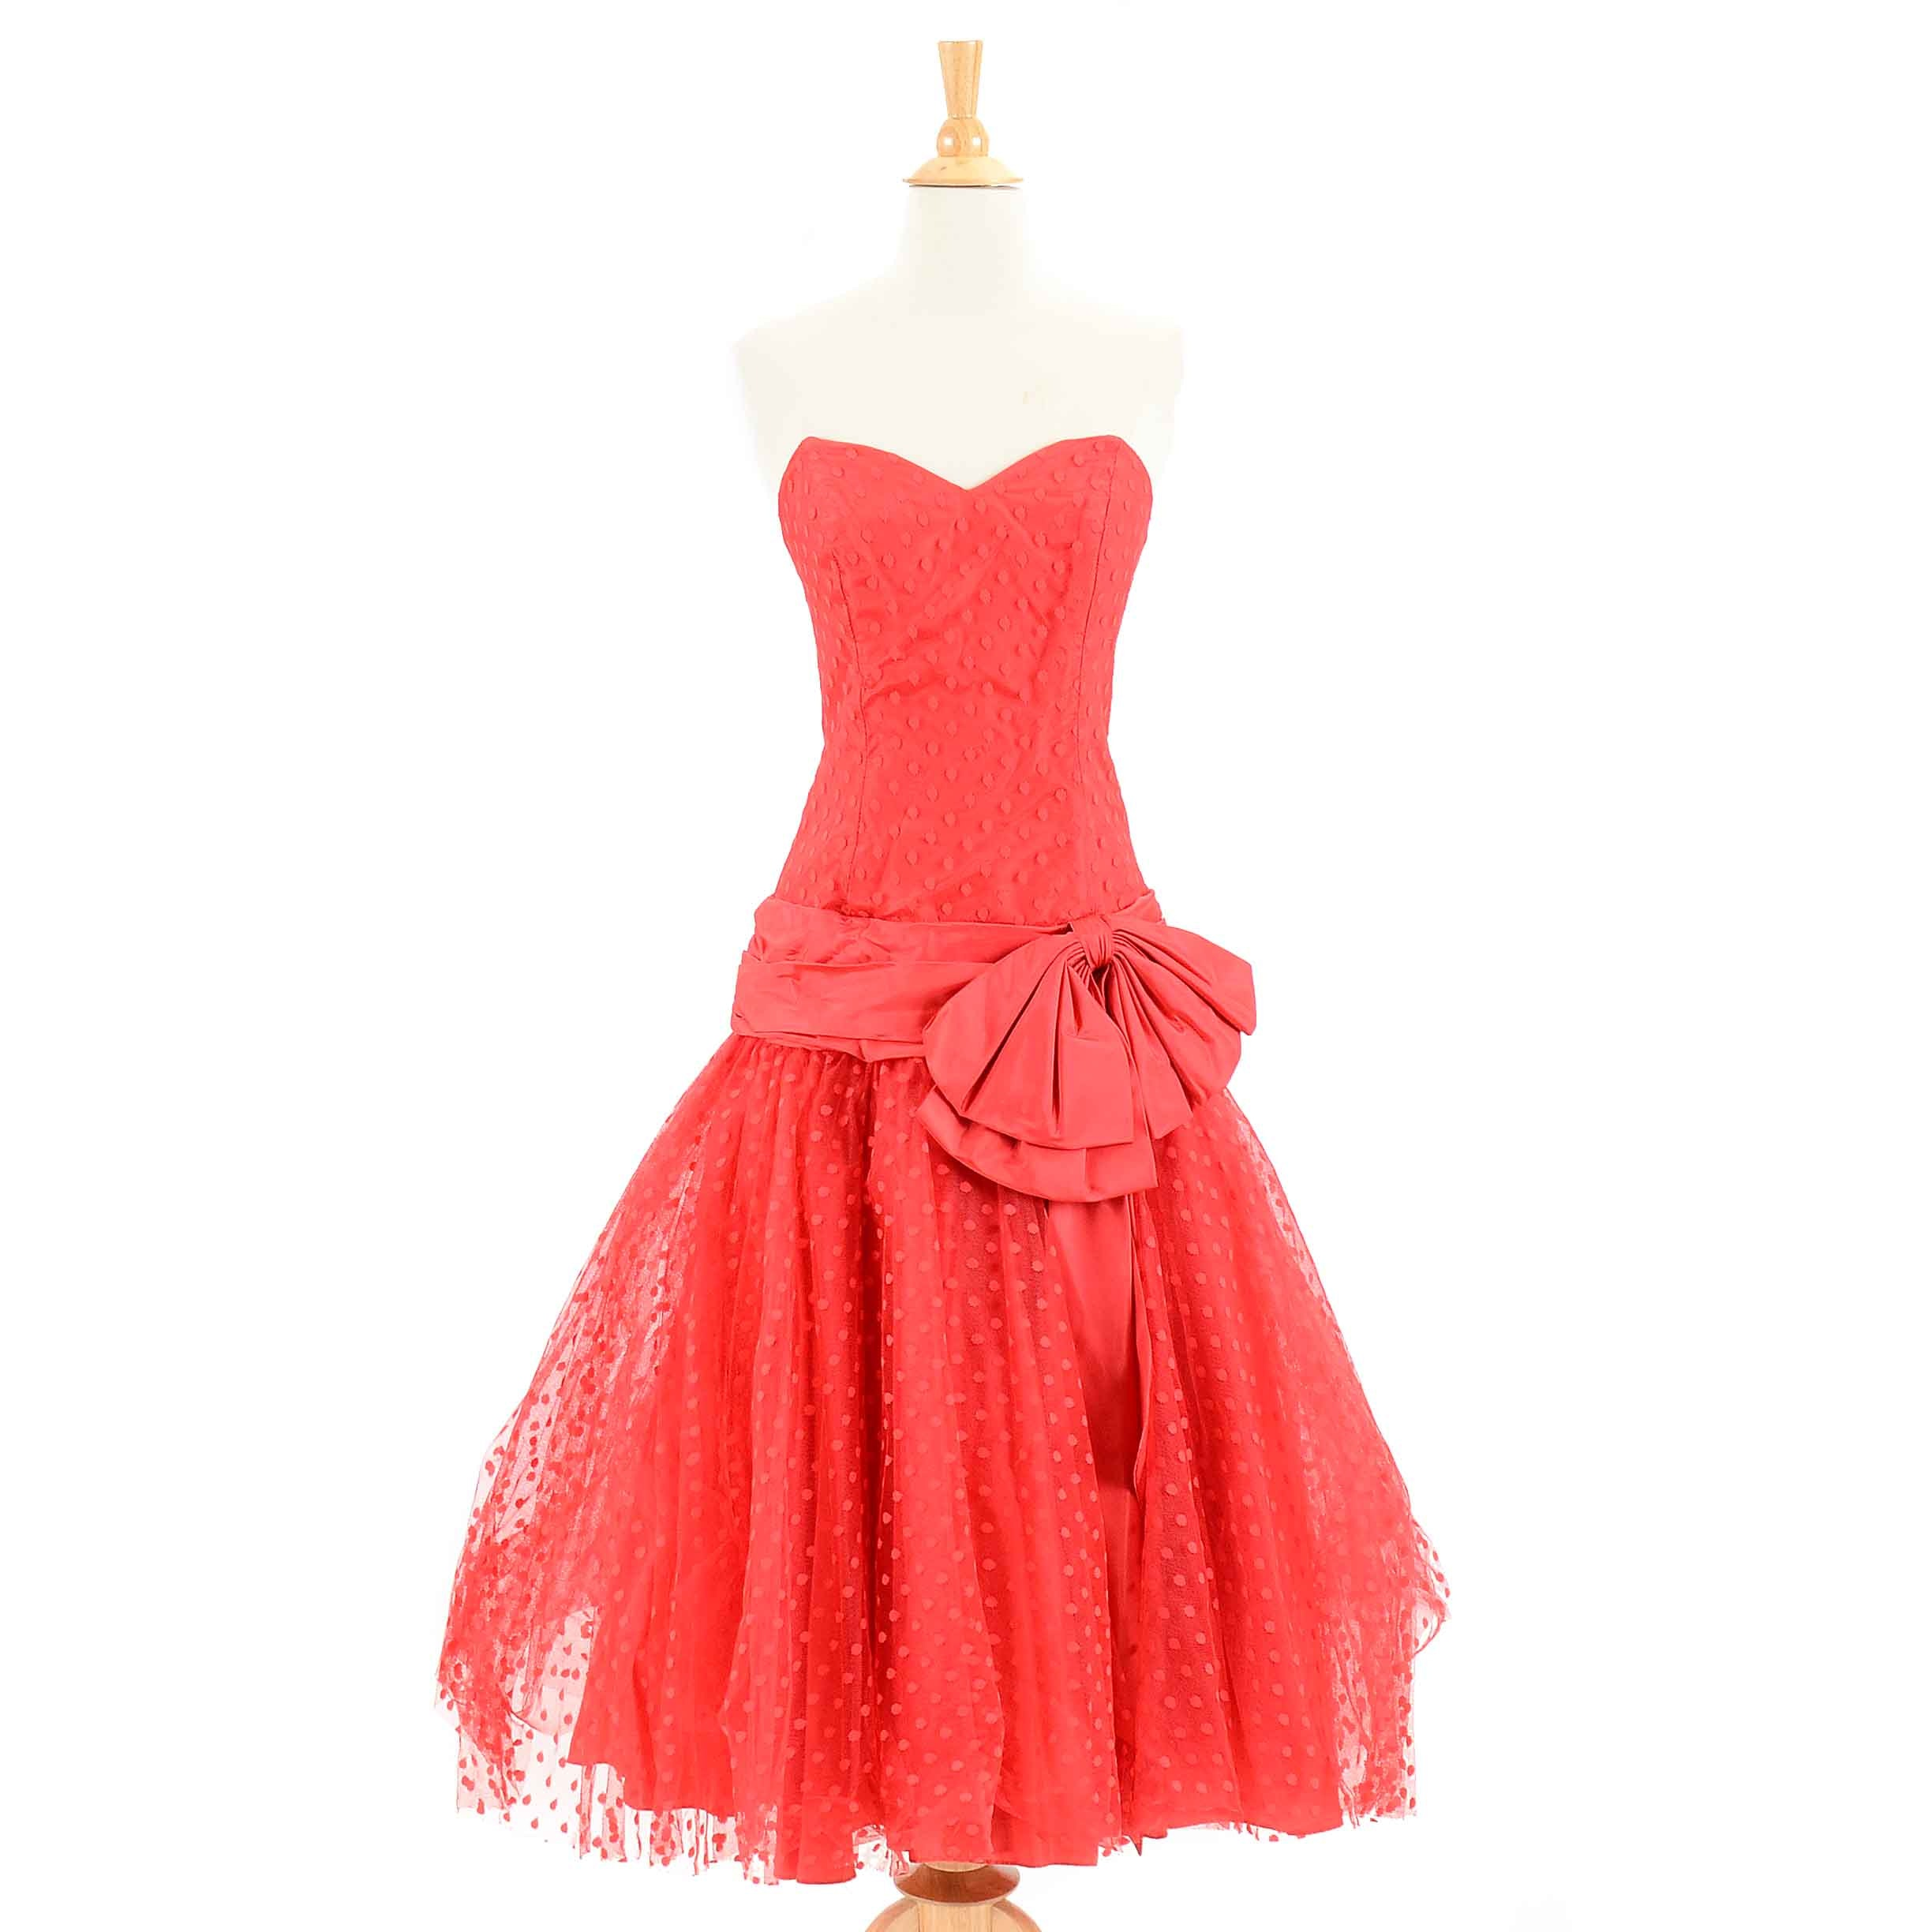 Women's Vintage Red Strapless Drop Waist Dress from HW Collections